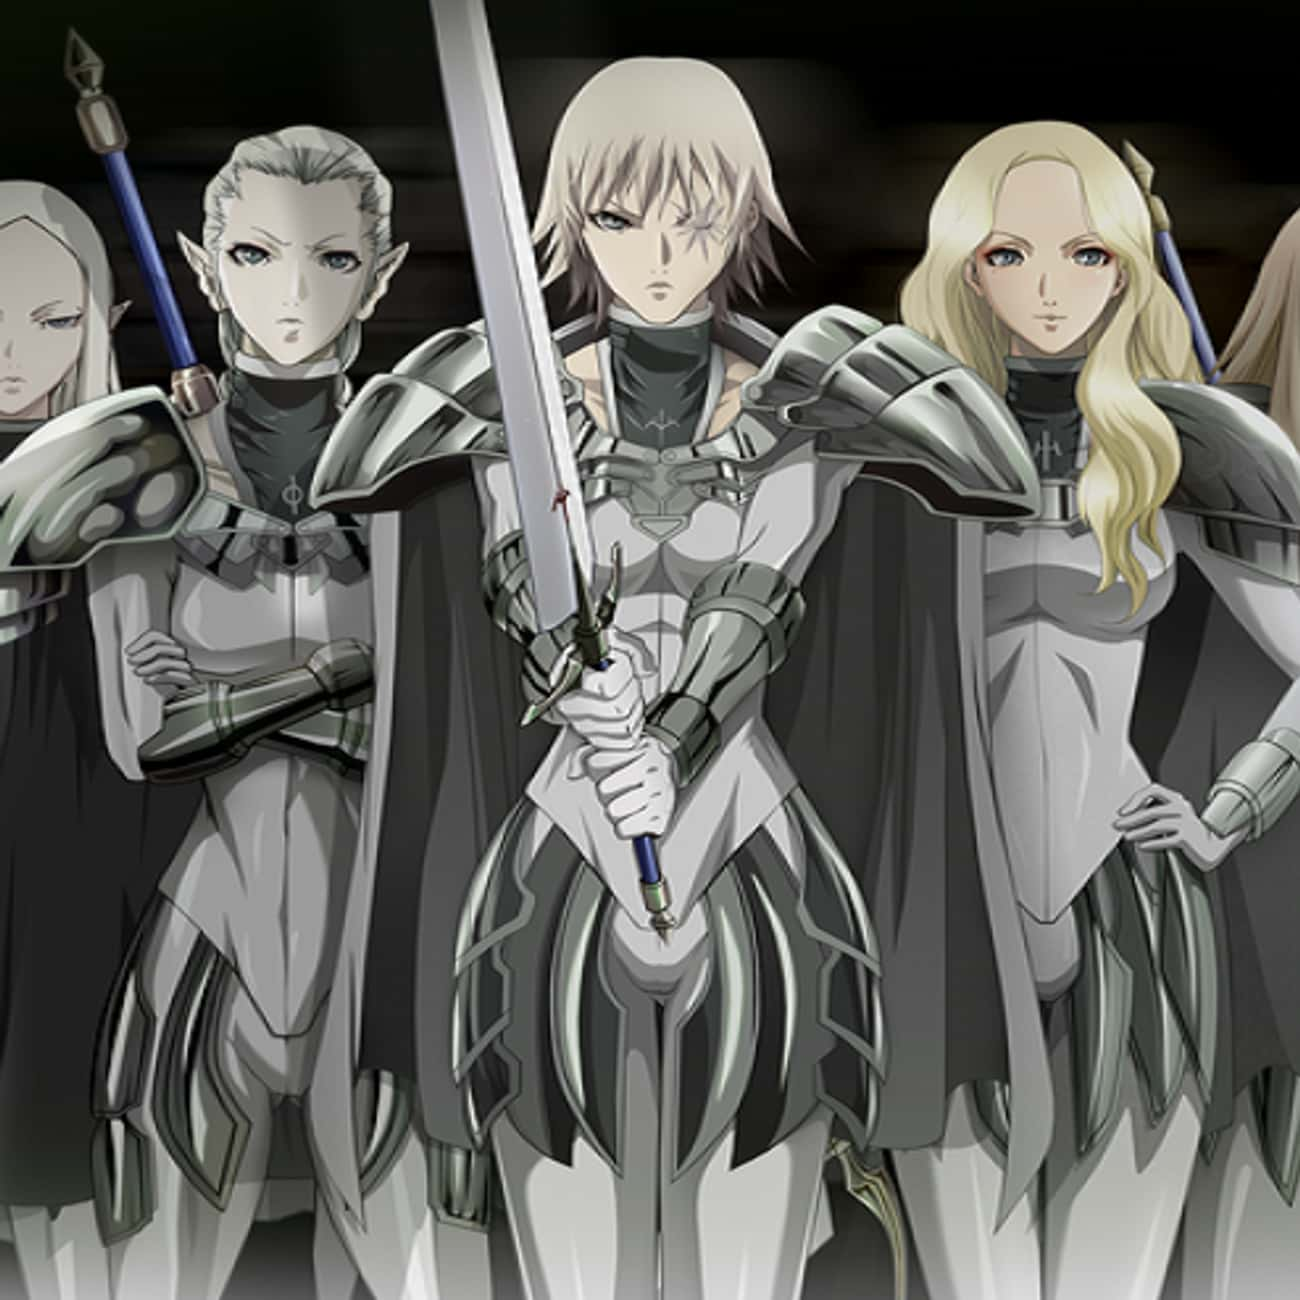 Claymore is listed (or ranked) 2 on the list 15 Anime With Strong Female Characters